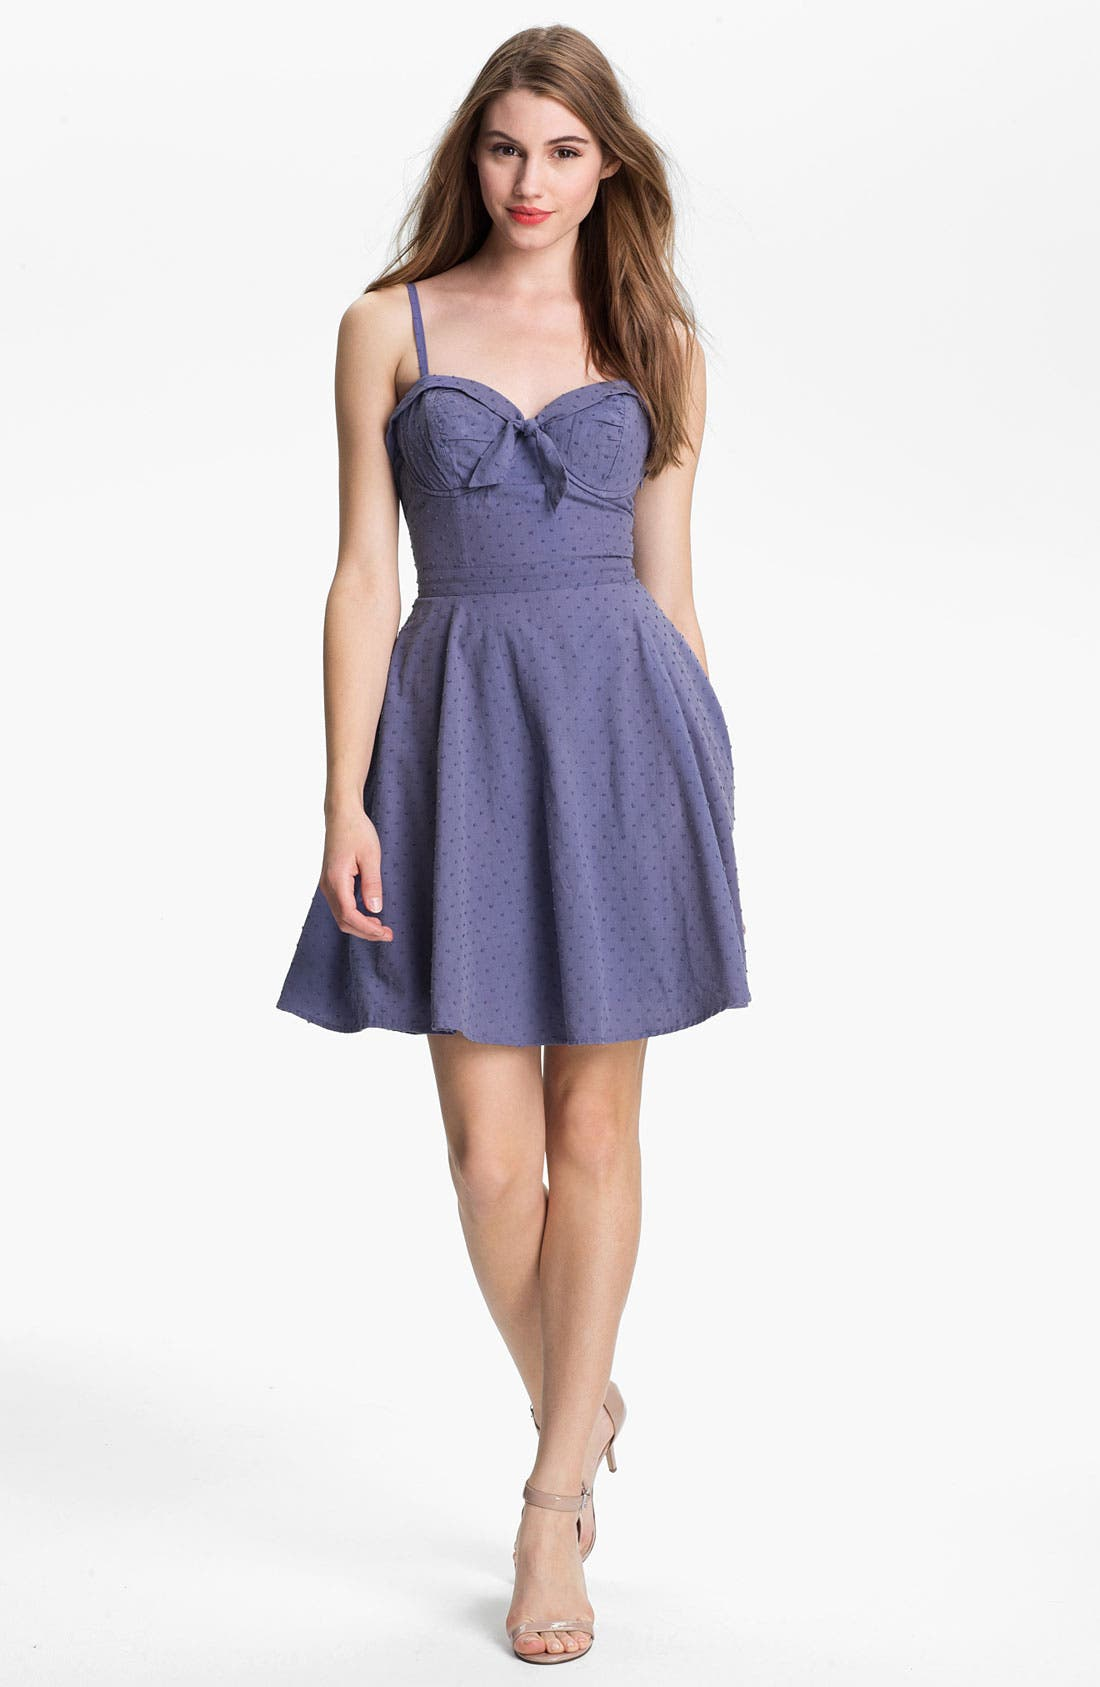 Alternate Image 1 Selected - Jessica Simpson 'Ava' Swiss Dot Dress (Online Exclusive)